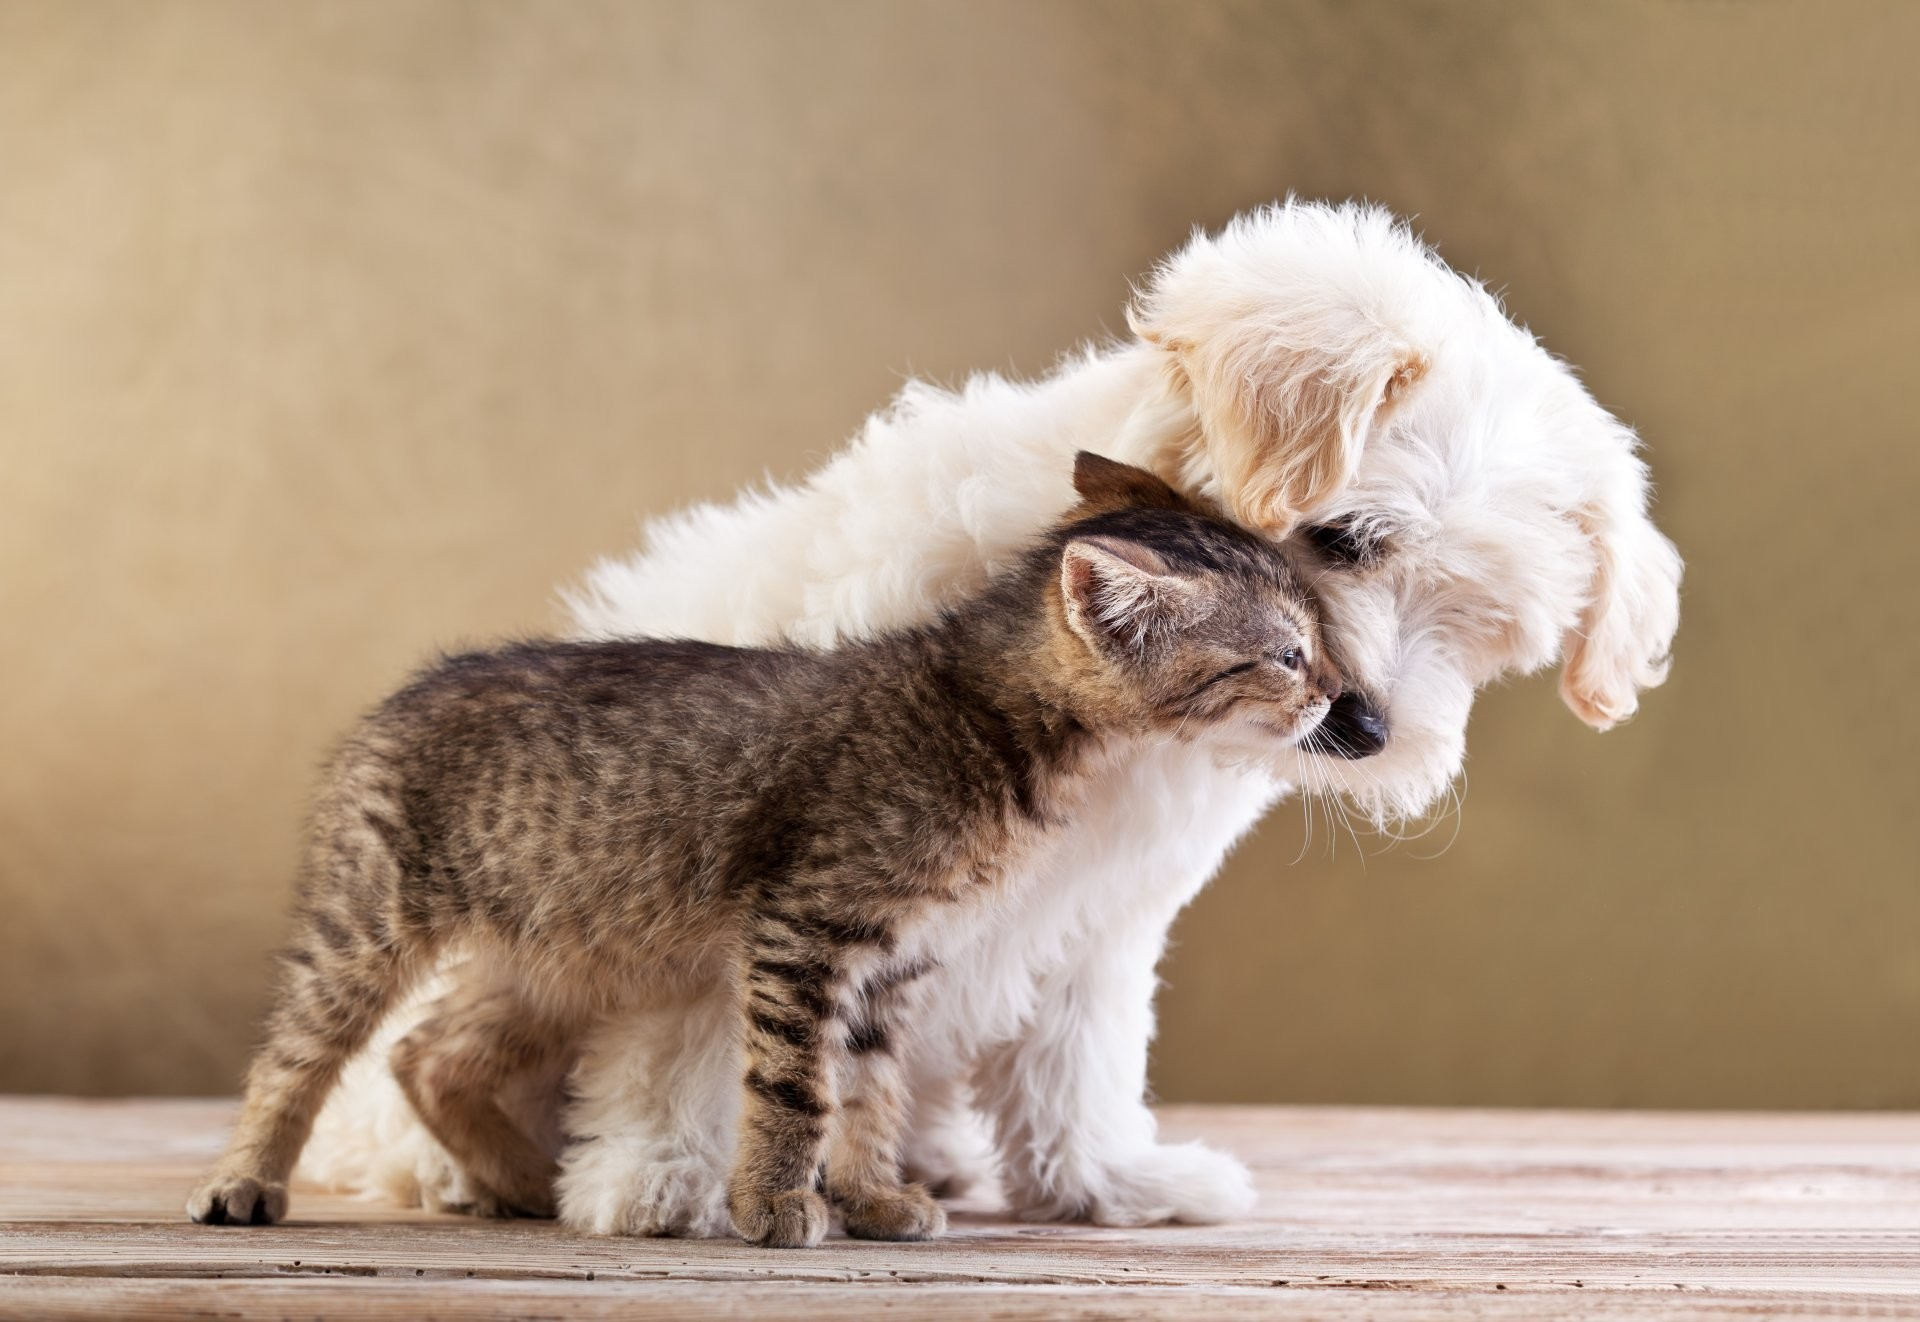 friends small dog and cat together puppy kitten love friends small dog cat  puppy kitten love